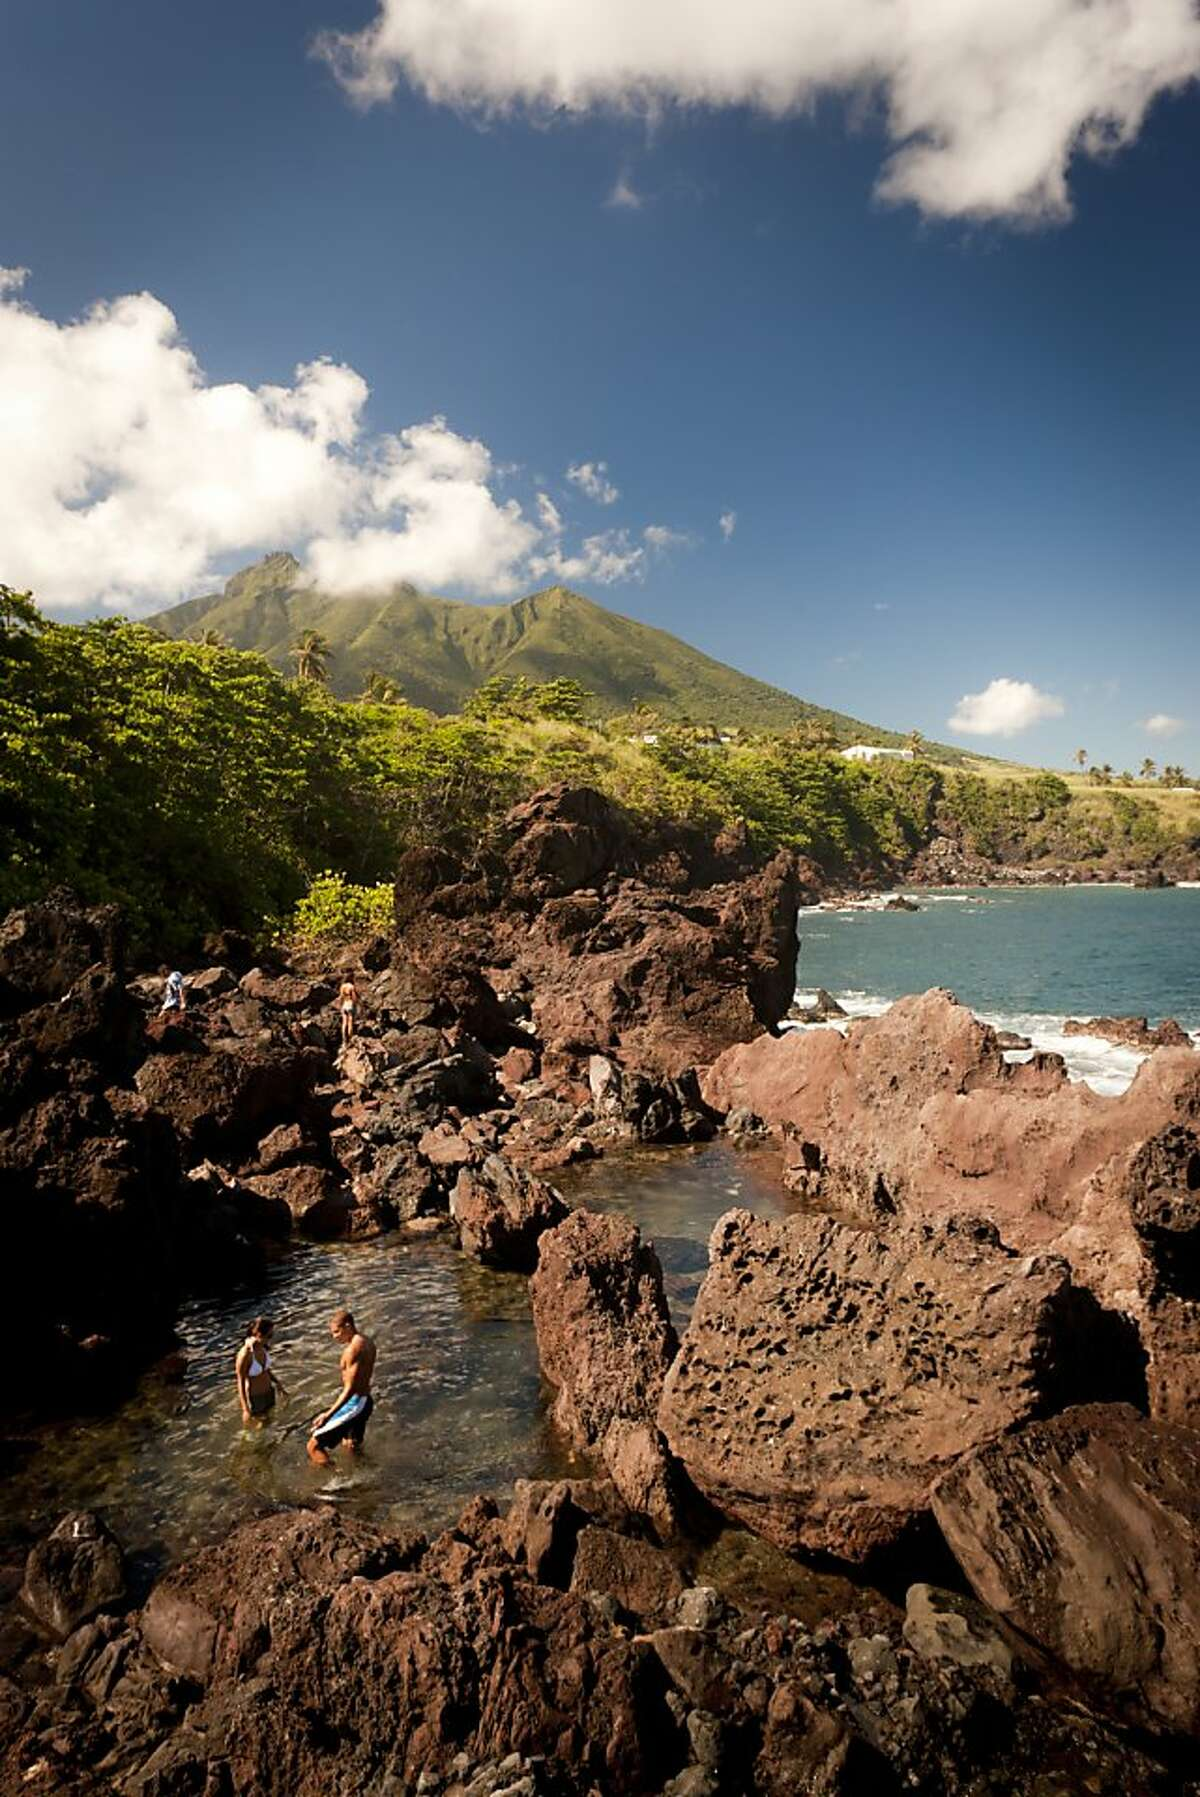 St. Kitts has undulating mountains draped in green and is ringed with sun-bleached beaches.